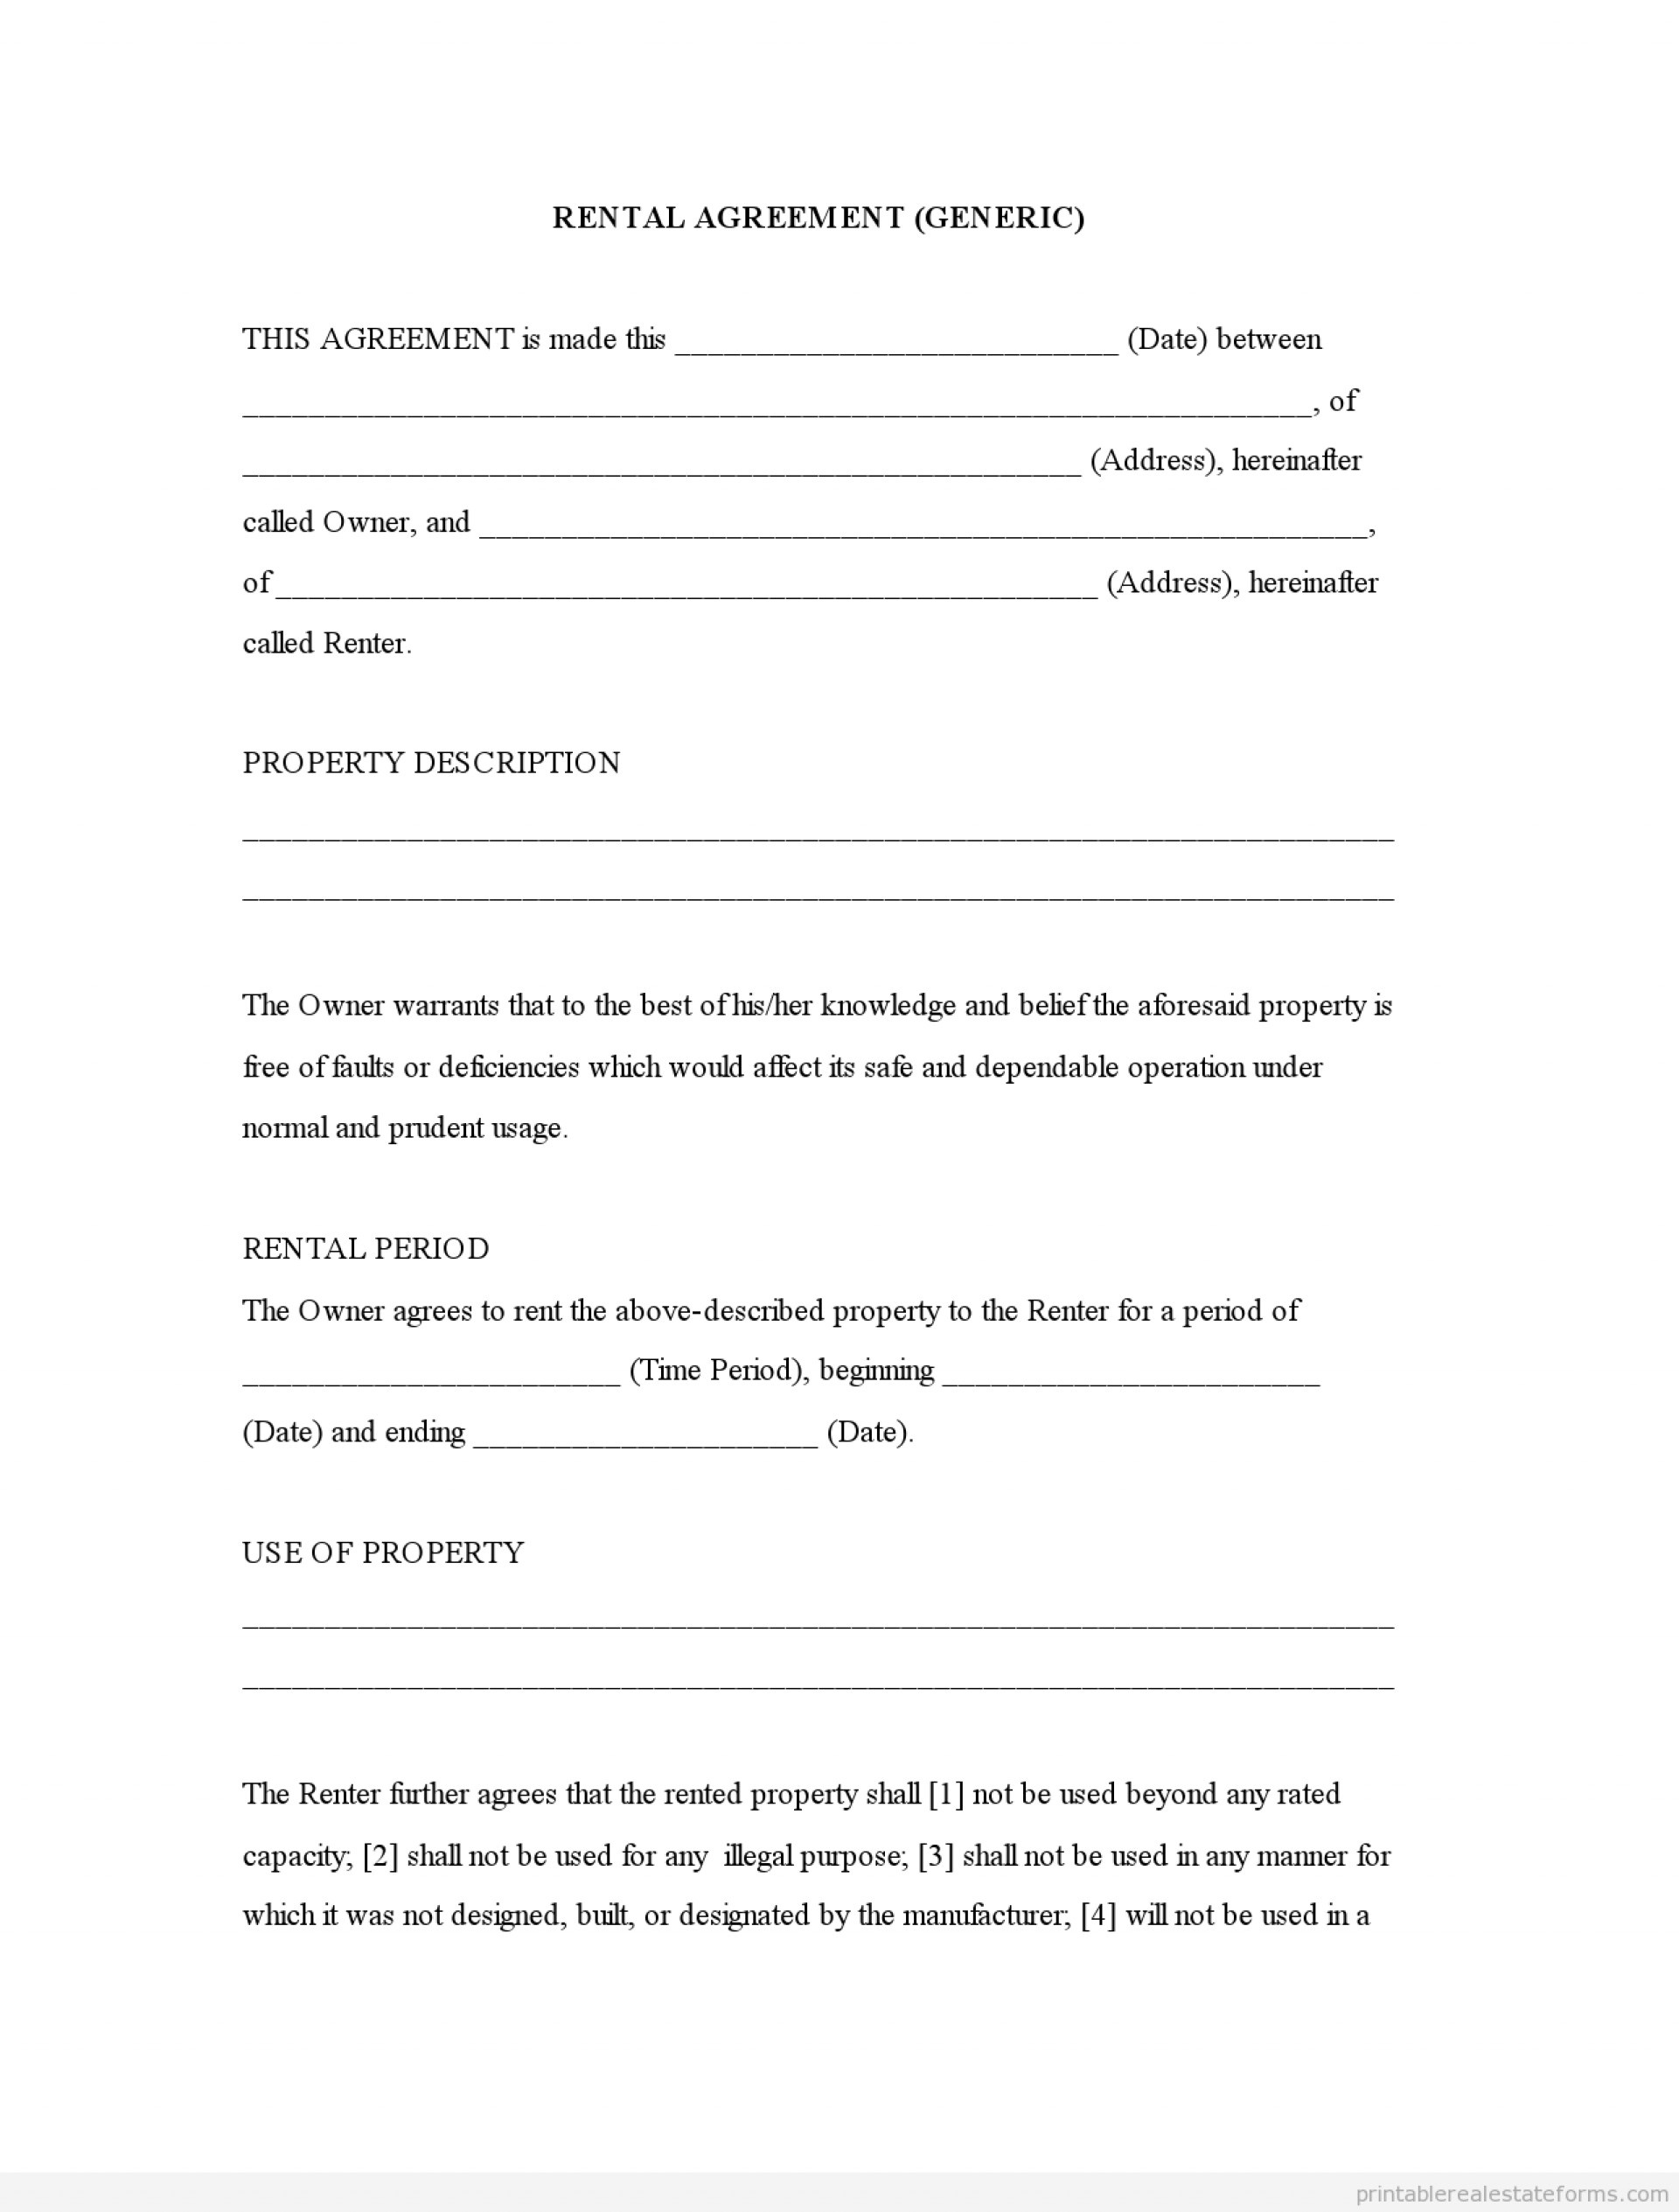 008 Free Printable Basic Rental Agreement Lease Form Template Ideas - Rental Agreement Forms Free Printable